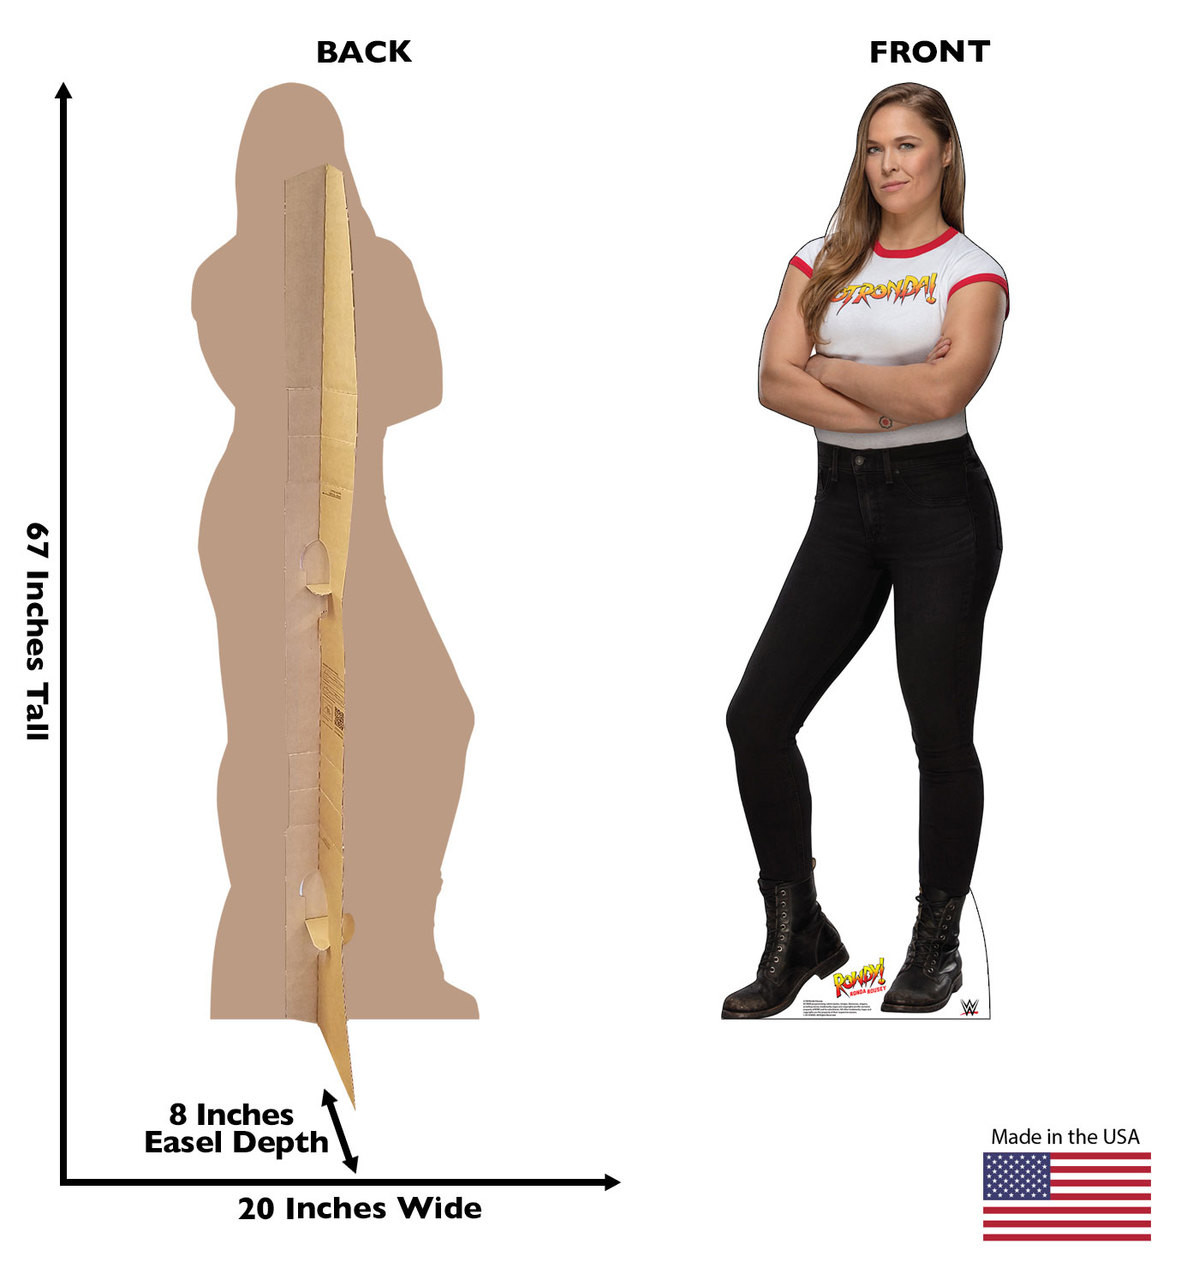 Ronda Rousey Life-size cardboard standee front and back with dimensions.